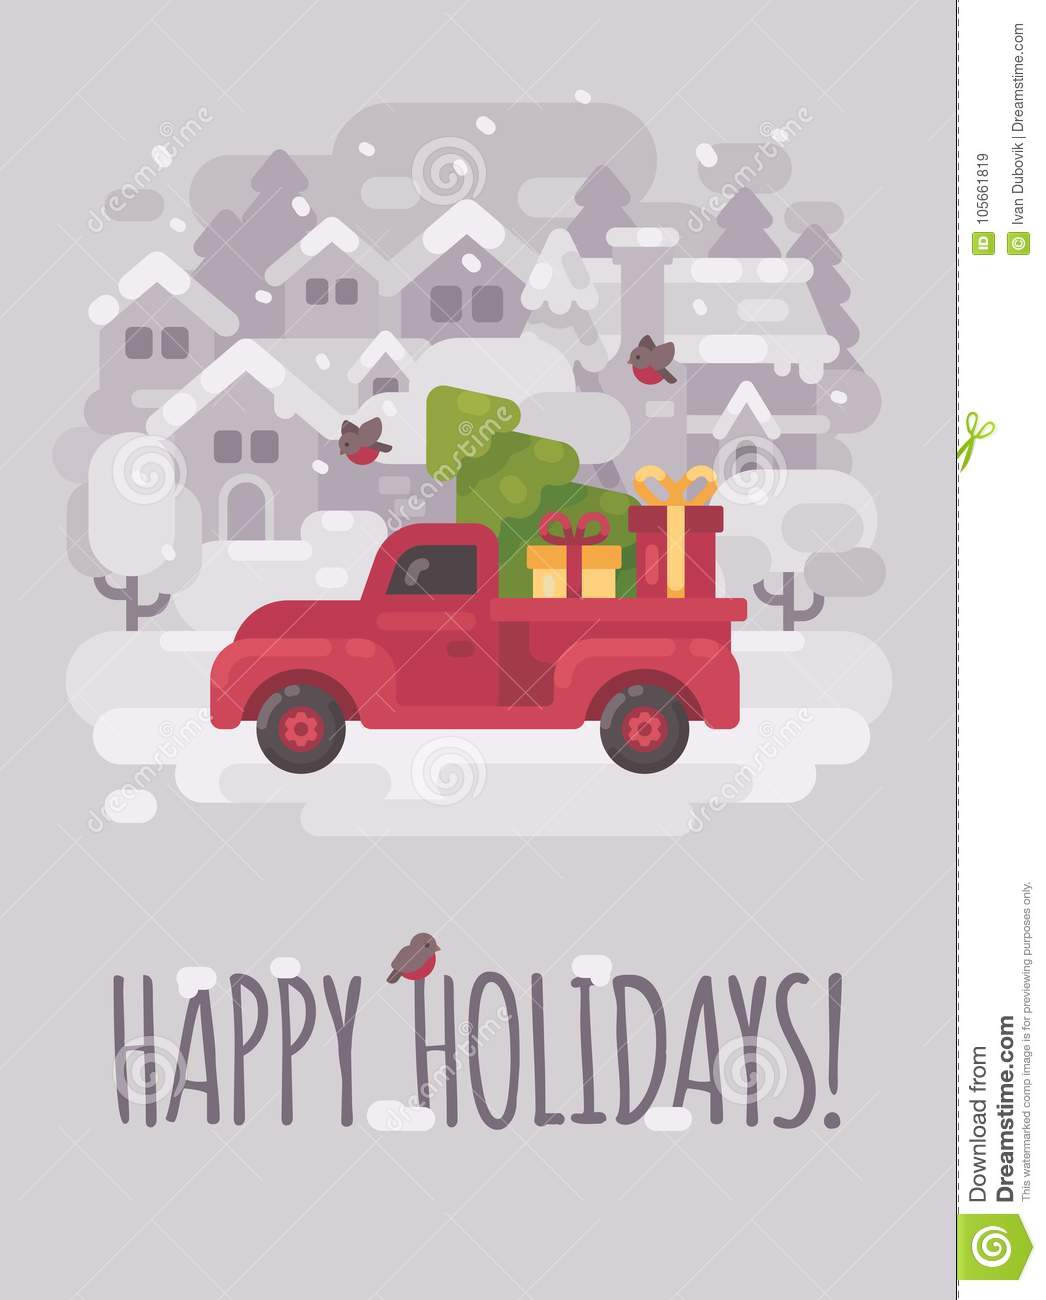 Old Red Farm Truck With A Christmas Tree And Presents Stock Vector ...